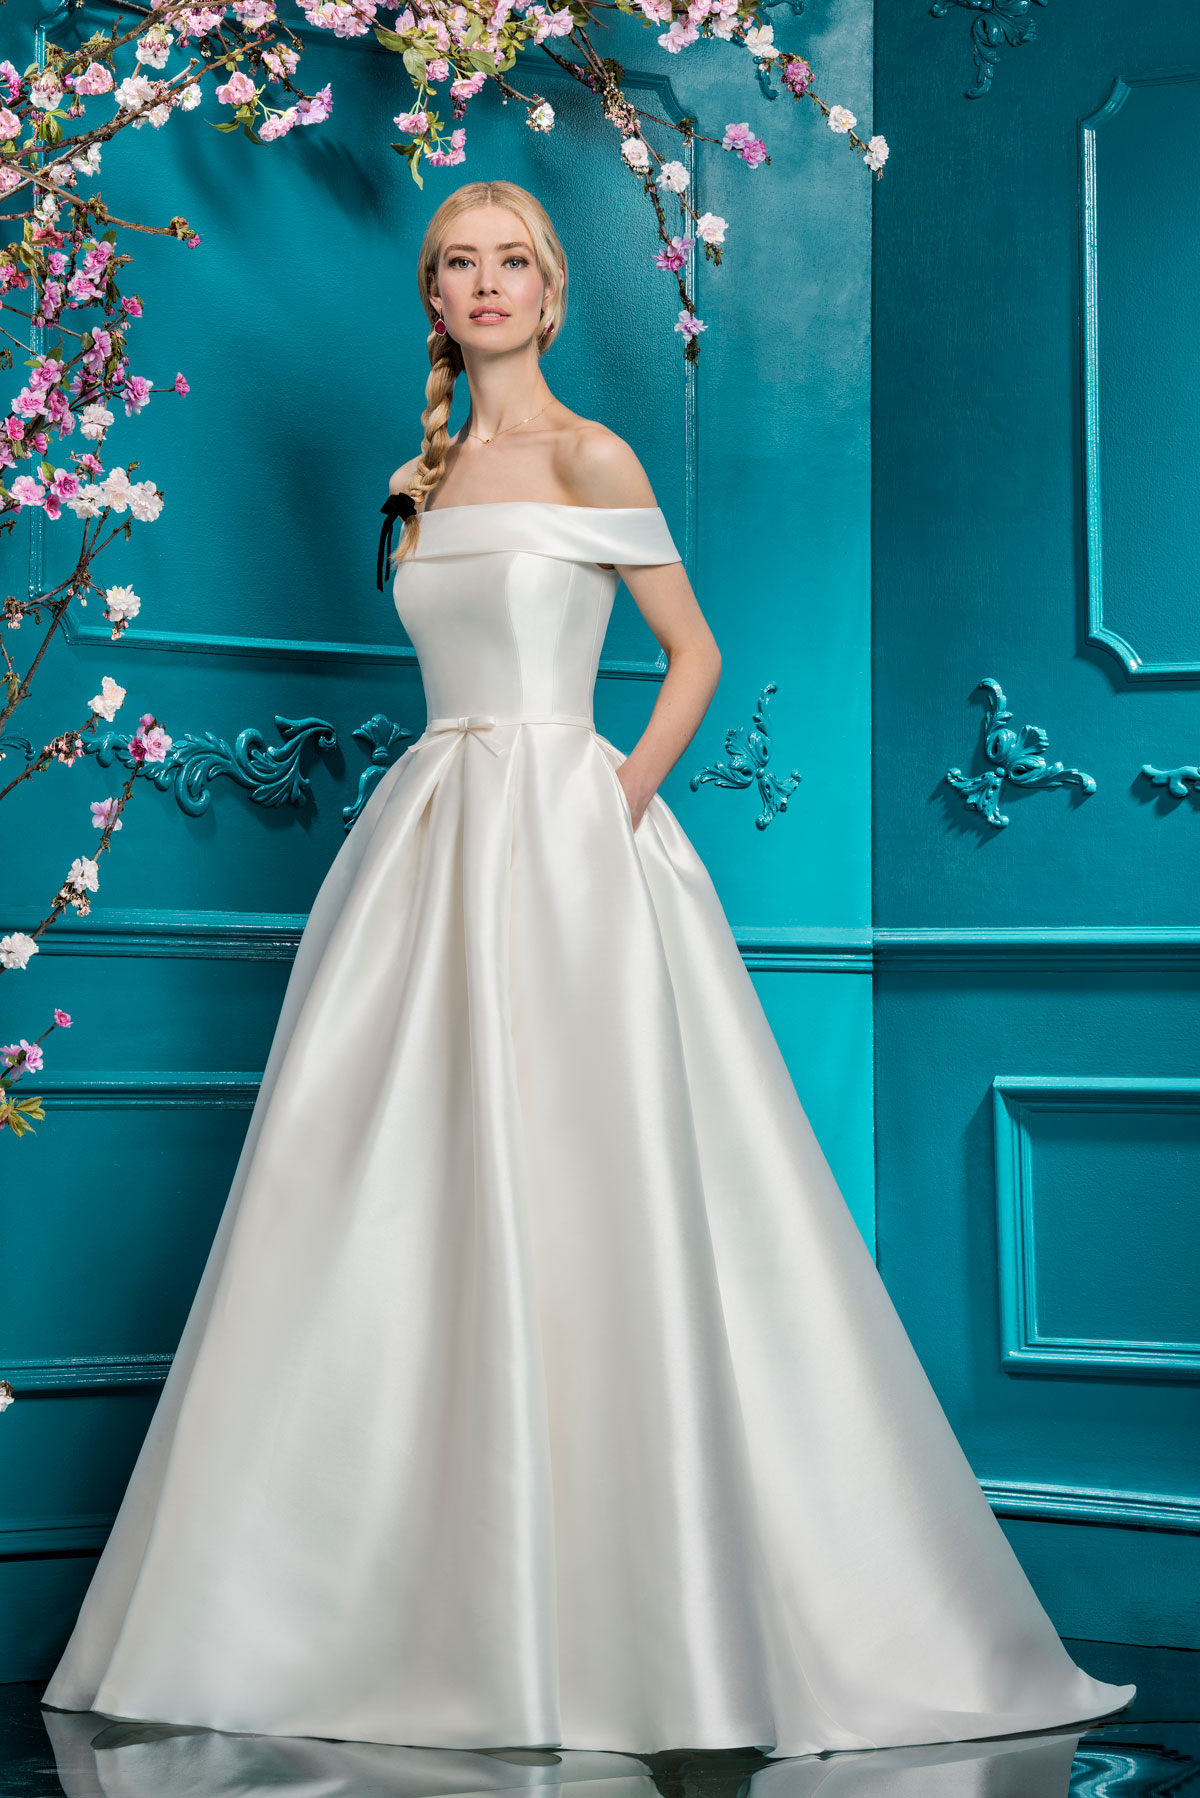 Five Wedding Dress Trends For 2019 | Omaha Lace Cleaners